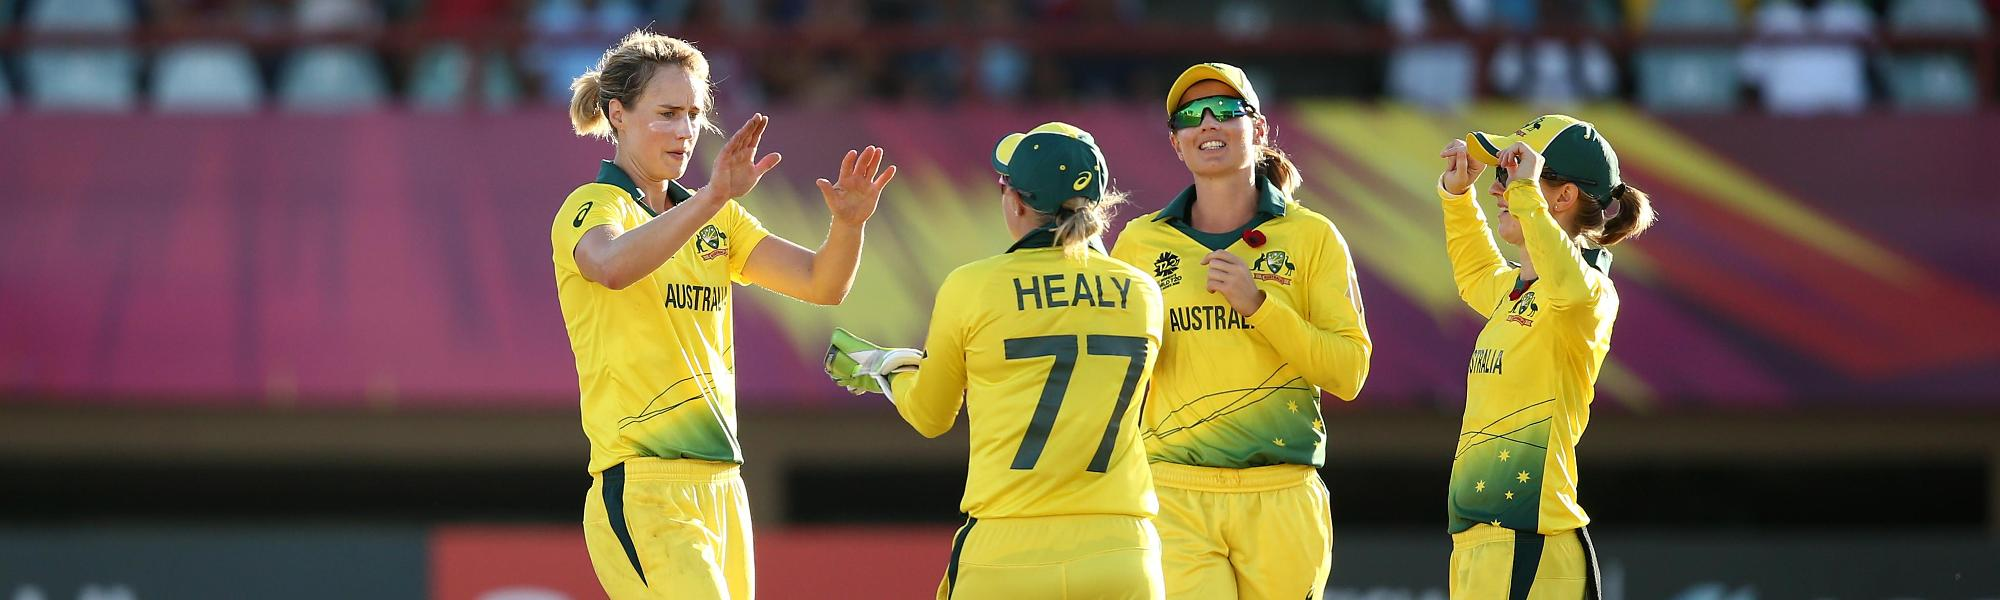 Ellyse Perry of Australia celebrates a wicket during the ICC Women's World T20 2018 match between Australia and Ireland at Guyana National Stadium on November 11, 2018 in Providence, Guyana.